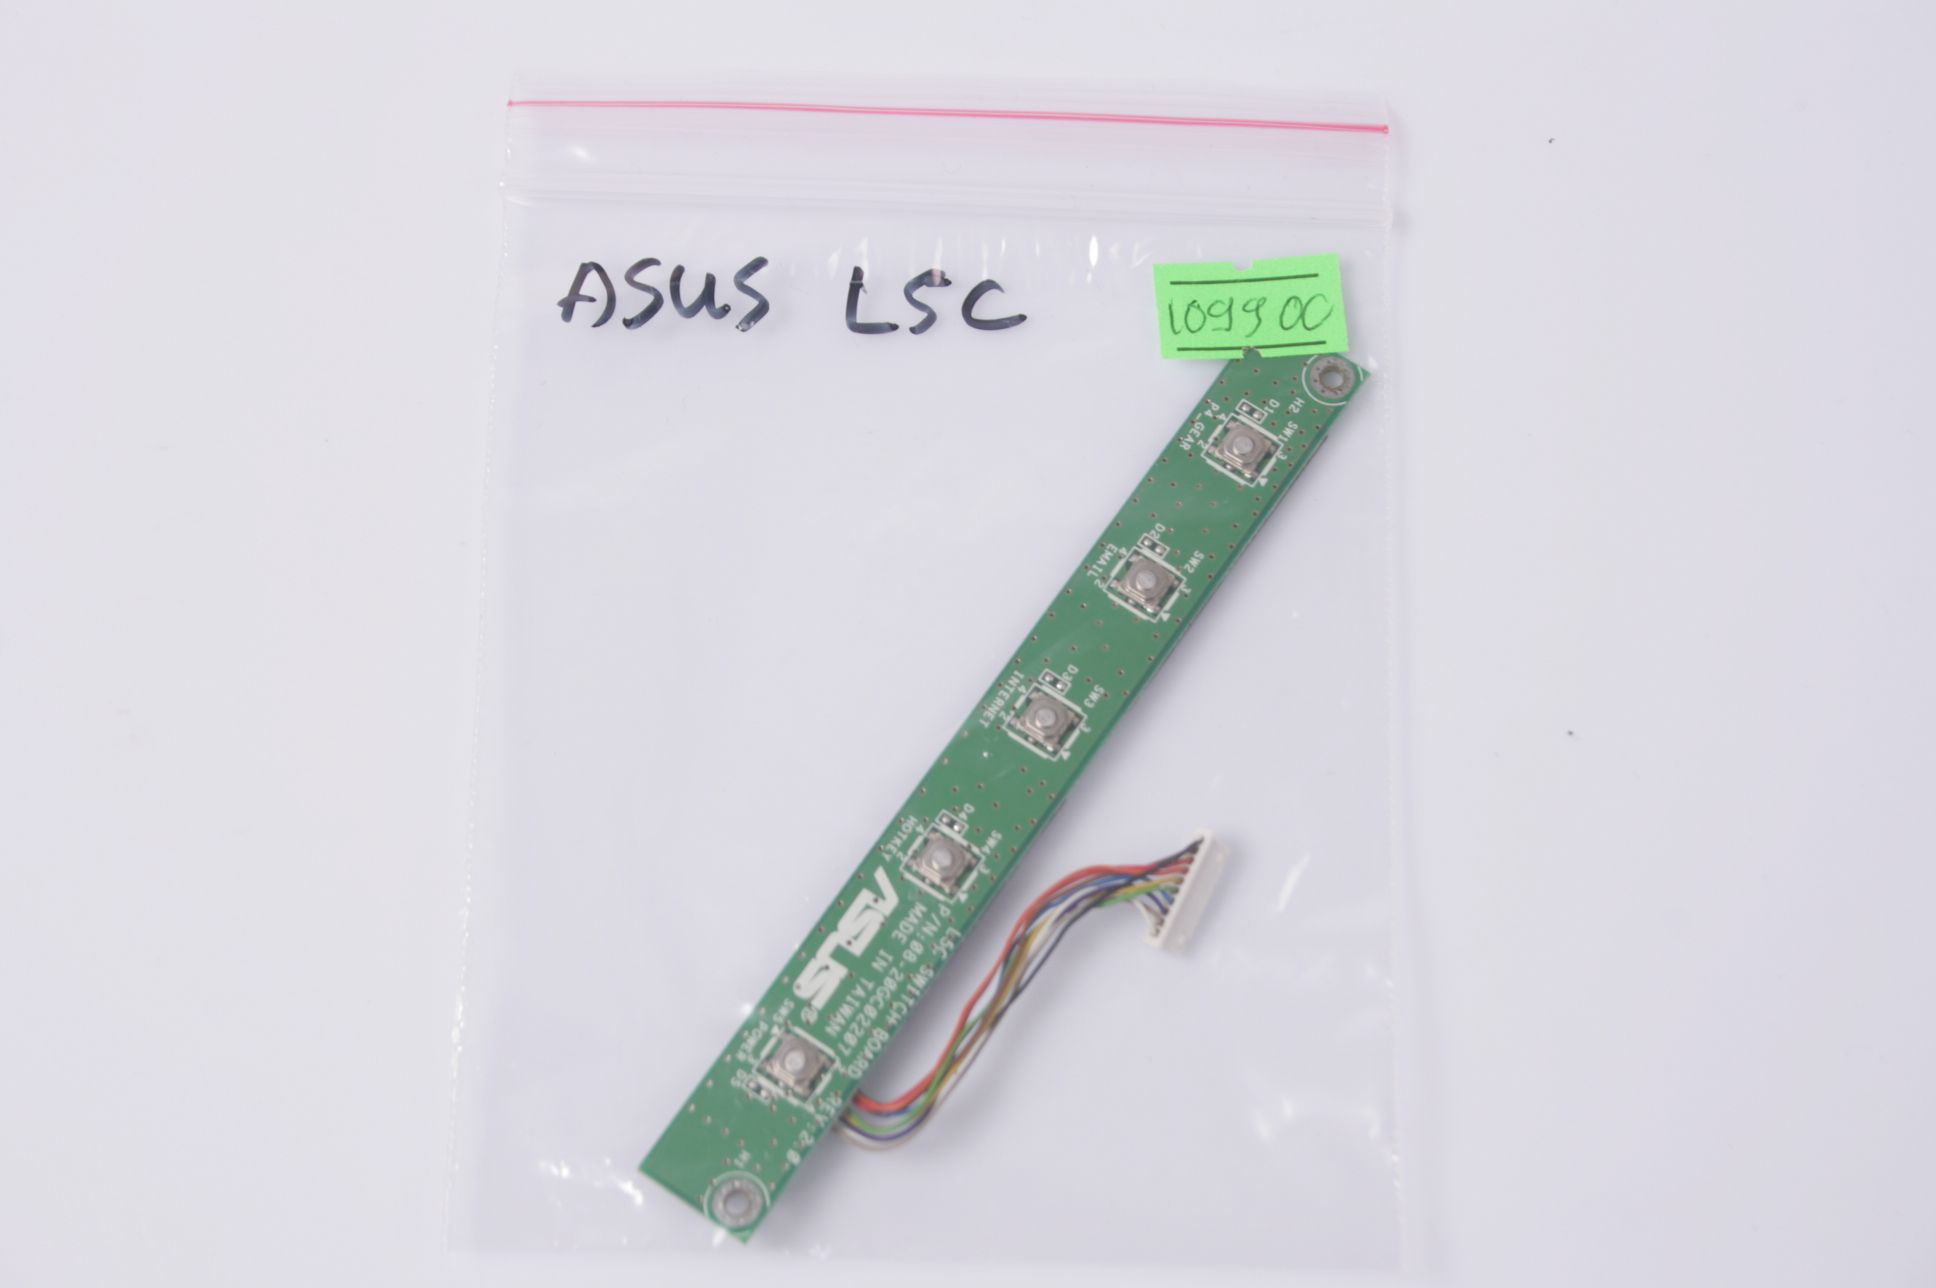 ASUS L5C Switch Board 08-20GC02207